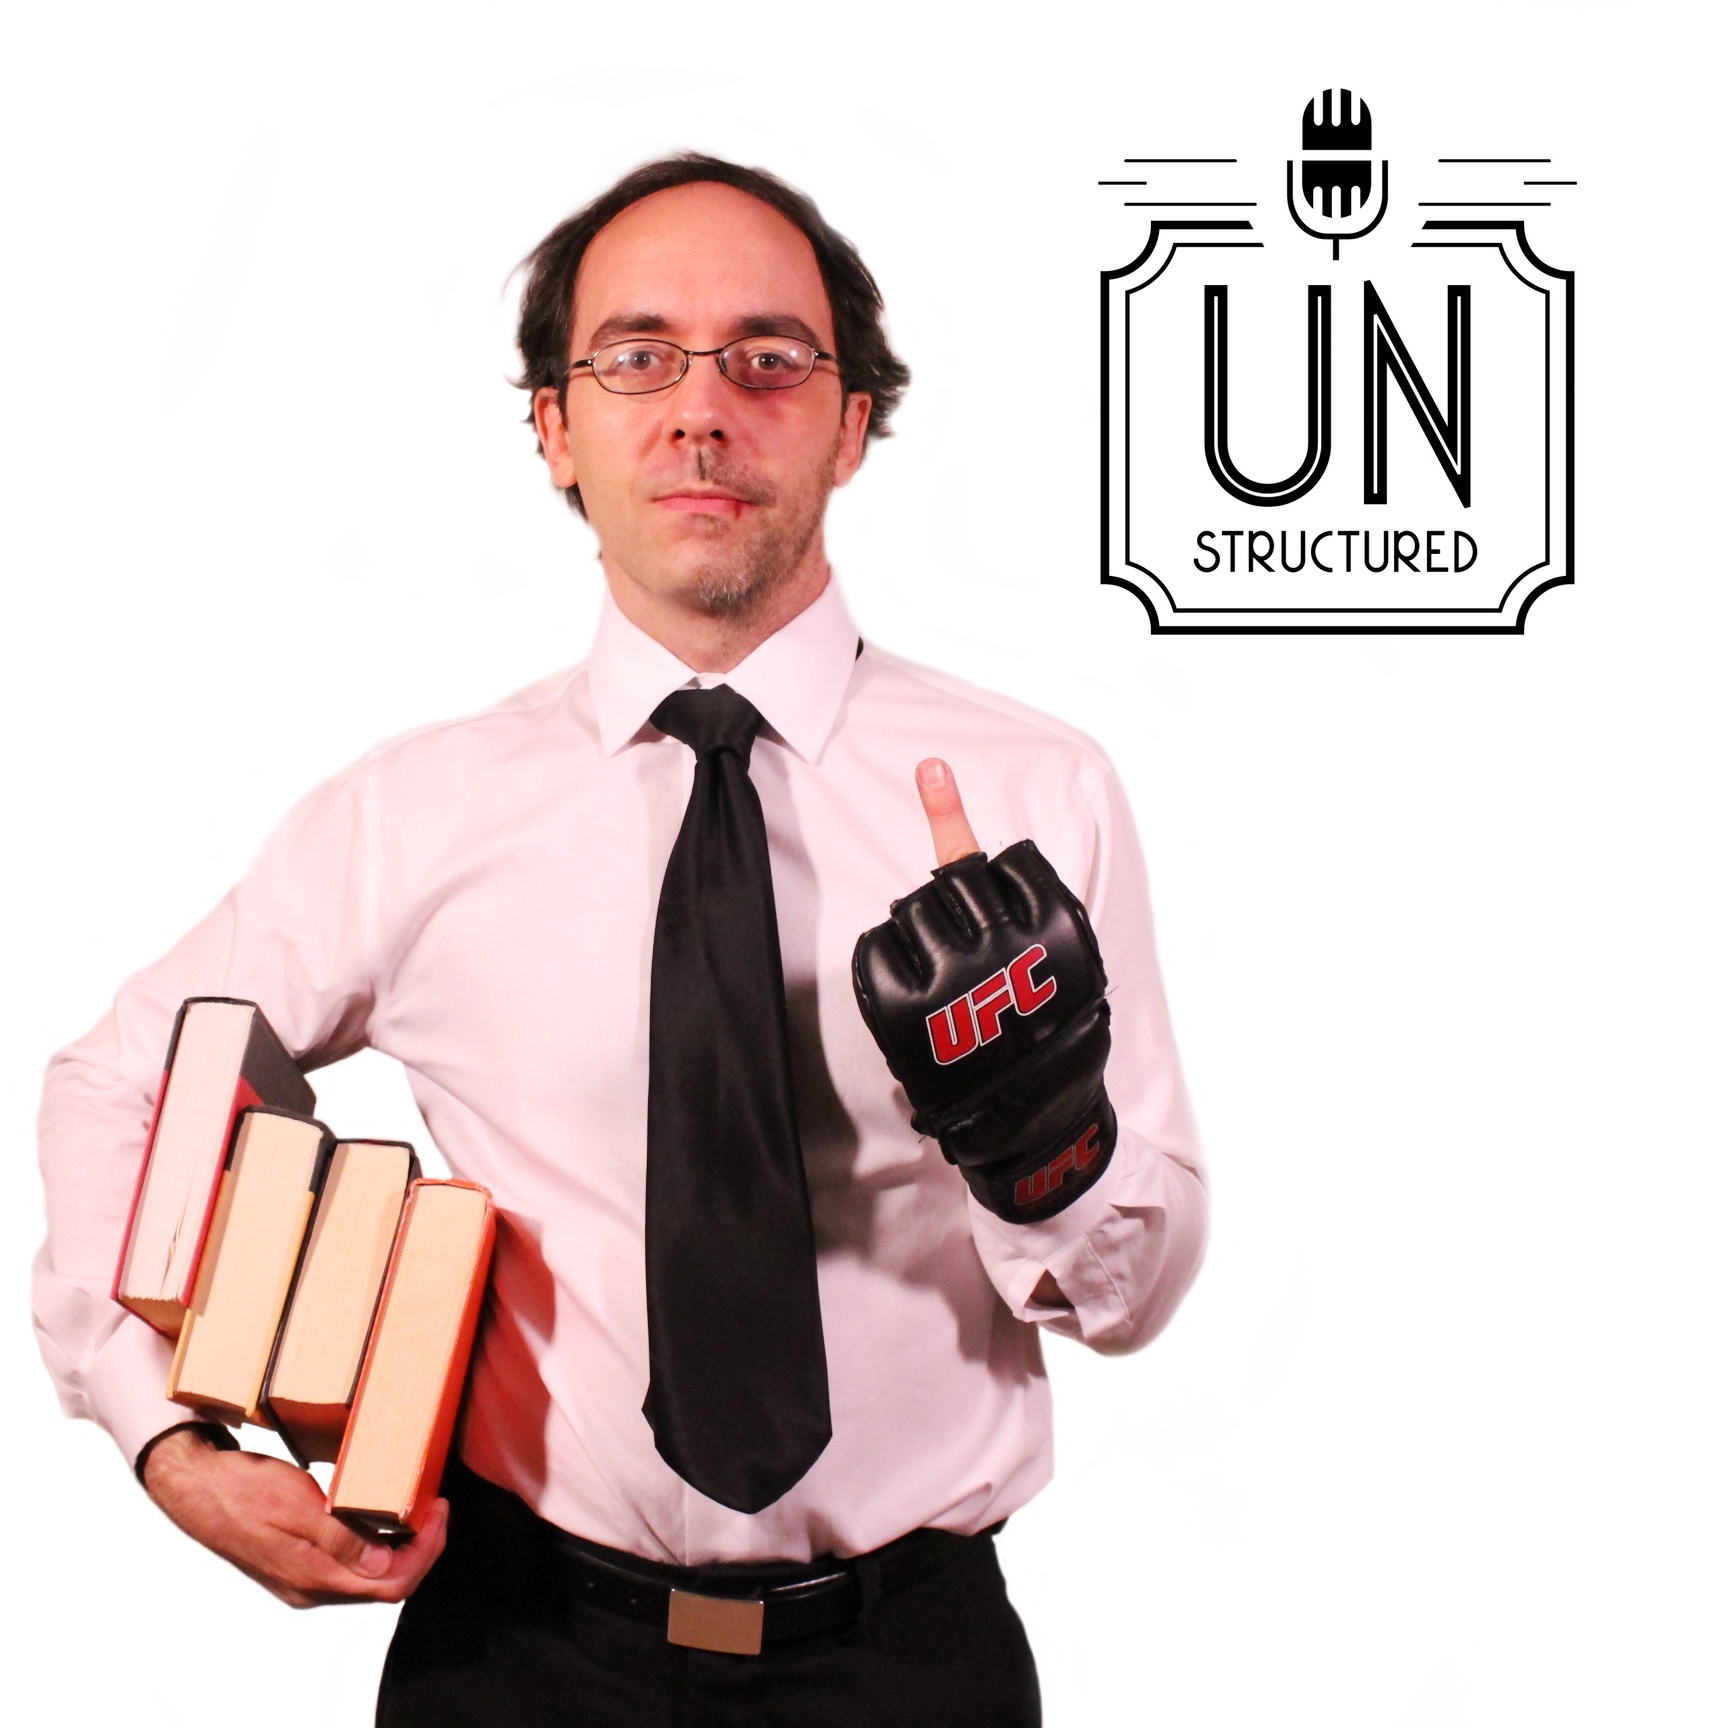 018 - Daniele Bolelli UnstructuredPod Unstructured interviews - Dynamic Informal Conversations with unique wide-ranging and well-researched interviews hosted by Eric Hunley